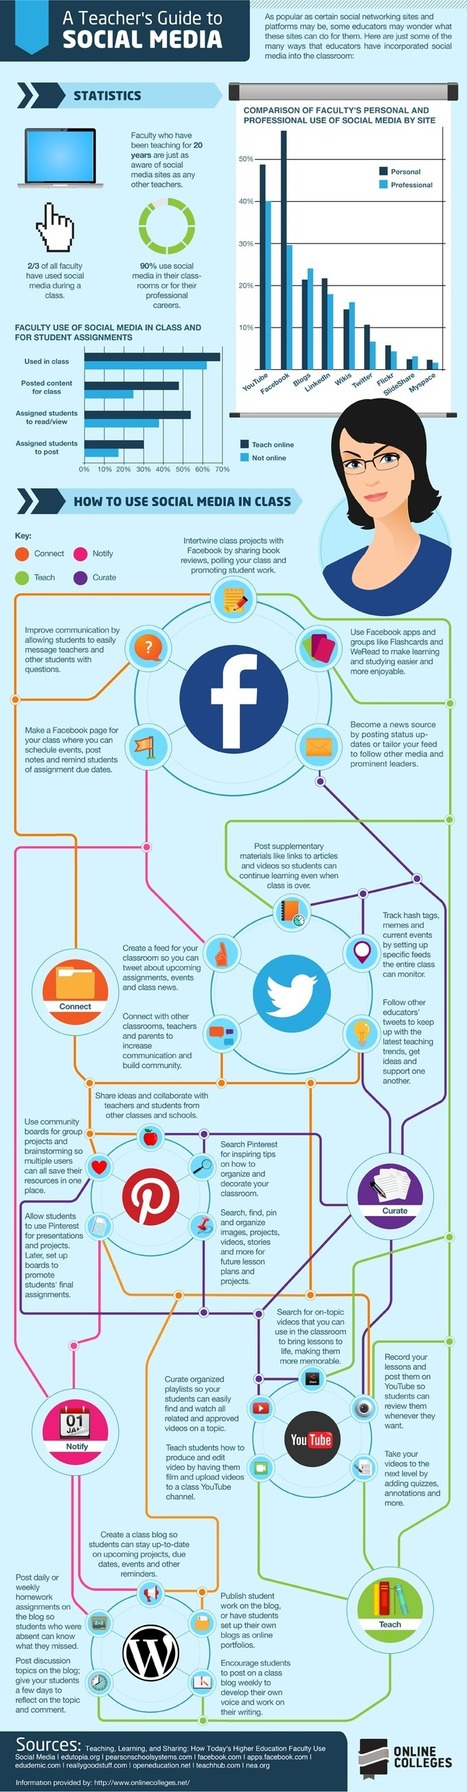 A Teacher's Guide to Social Media - 2013's Online Colleges: Compare Cost, Degrees, Accreditation & more! | Social Media and the Future of Education | Scoop.it